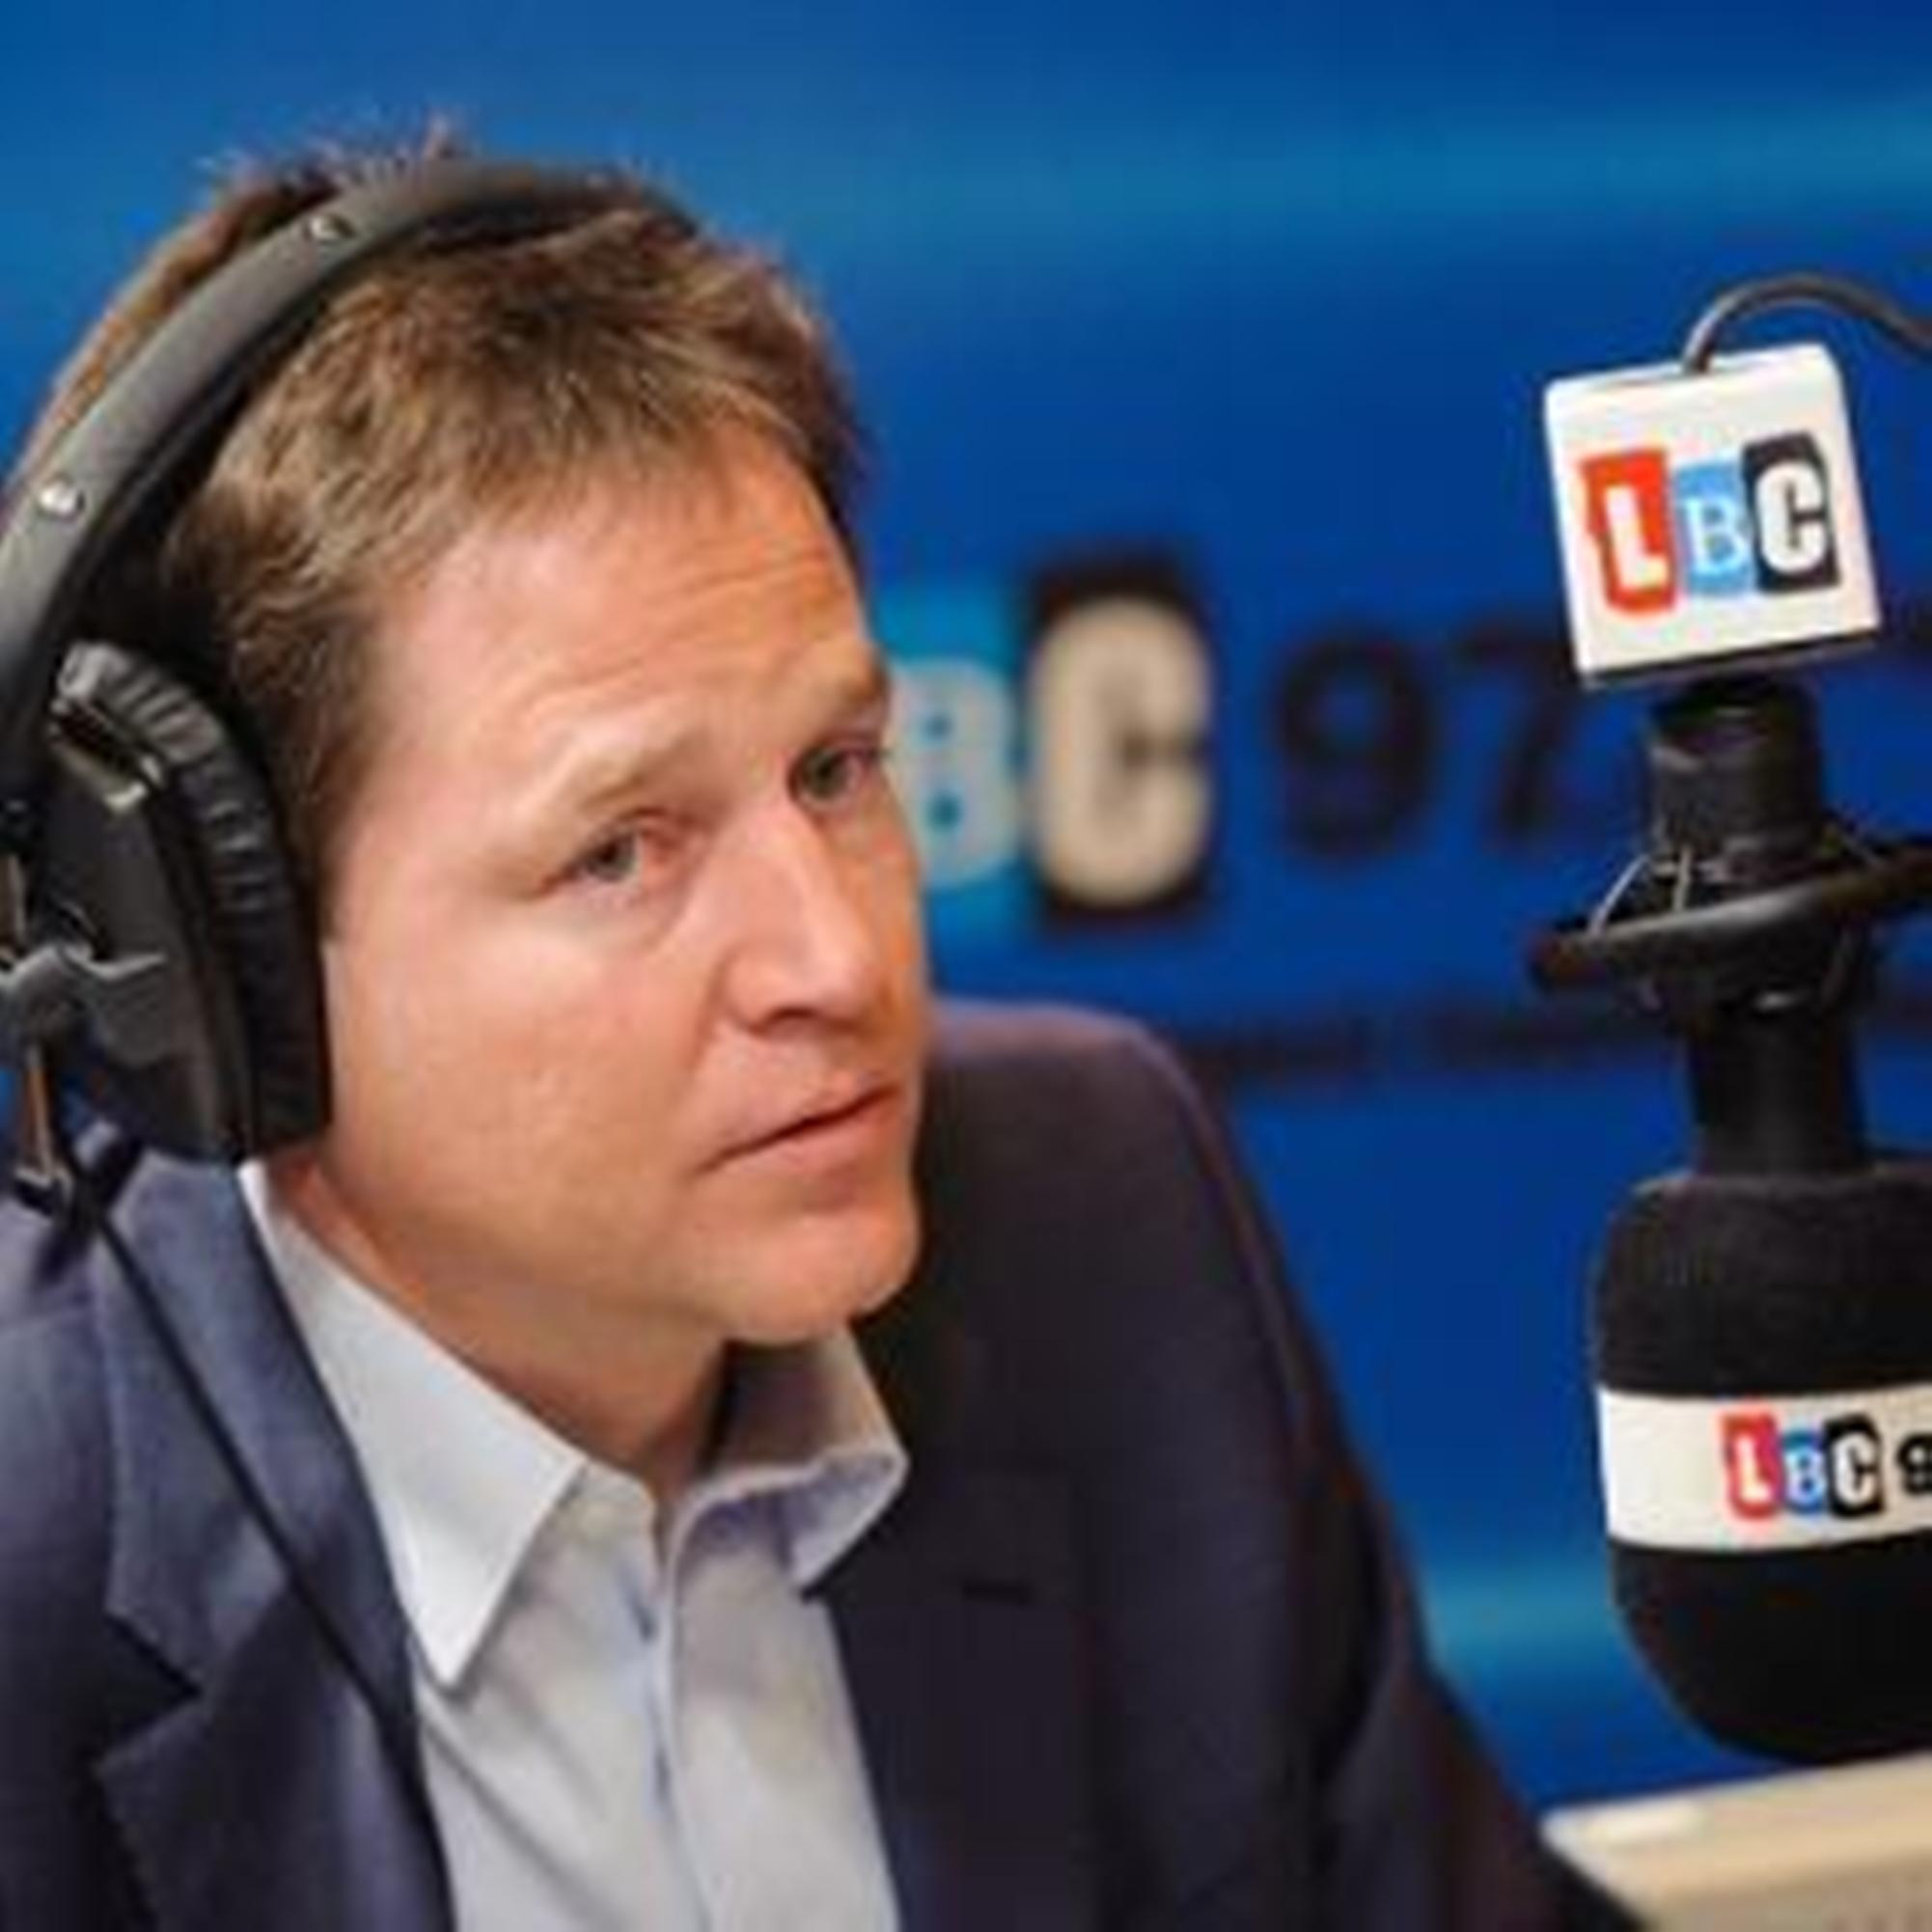 Crayford Sainsbury's shopper Jo Clarke hits back at critics as Nick Clegg joins debate